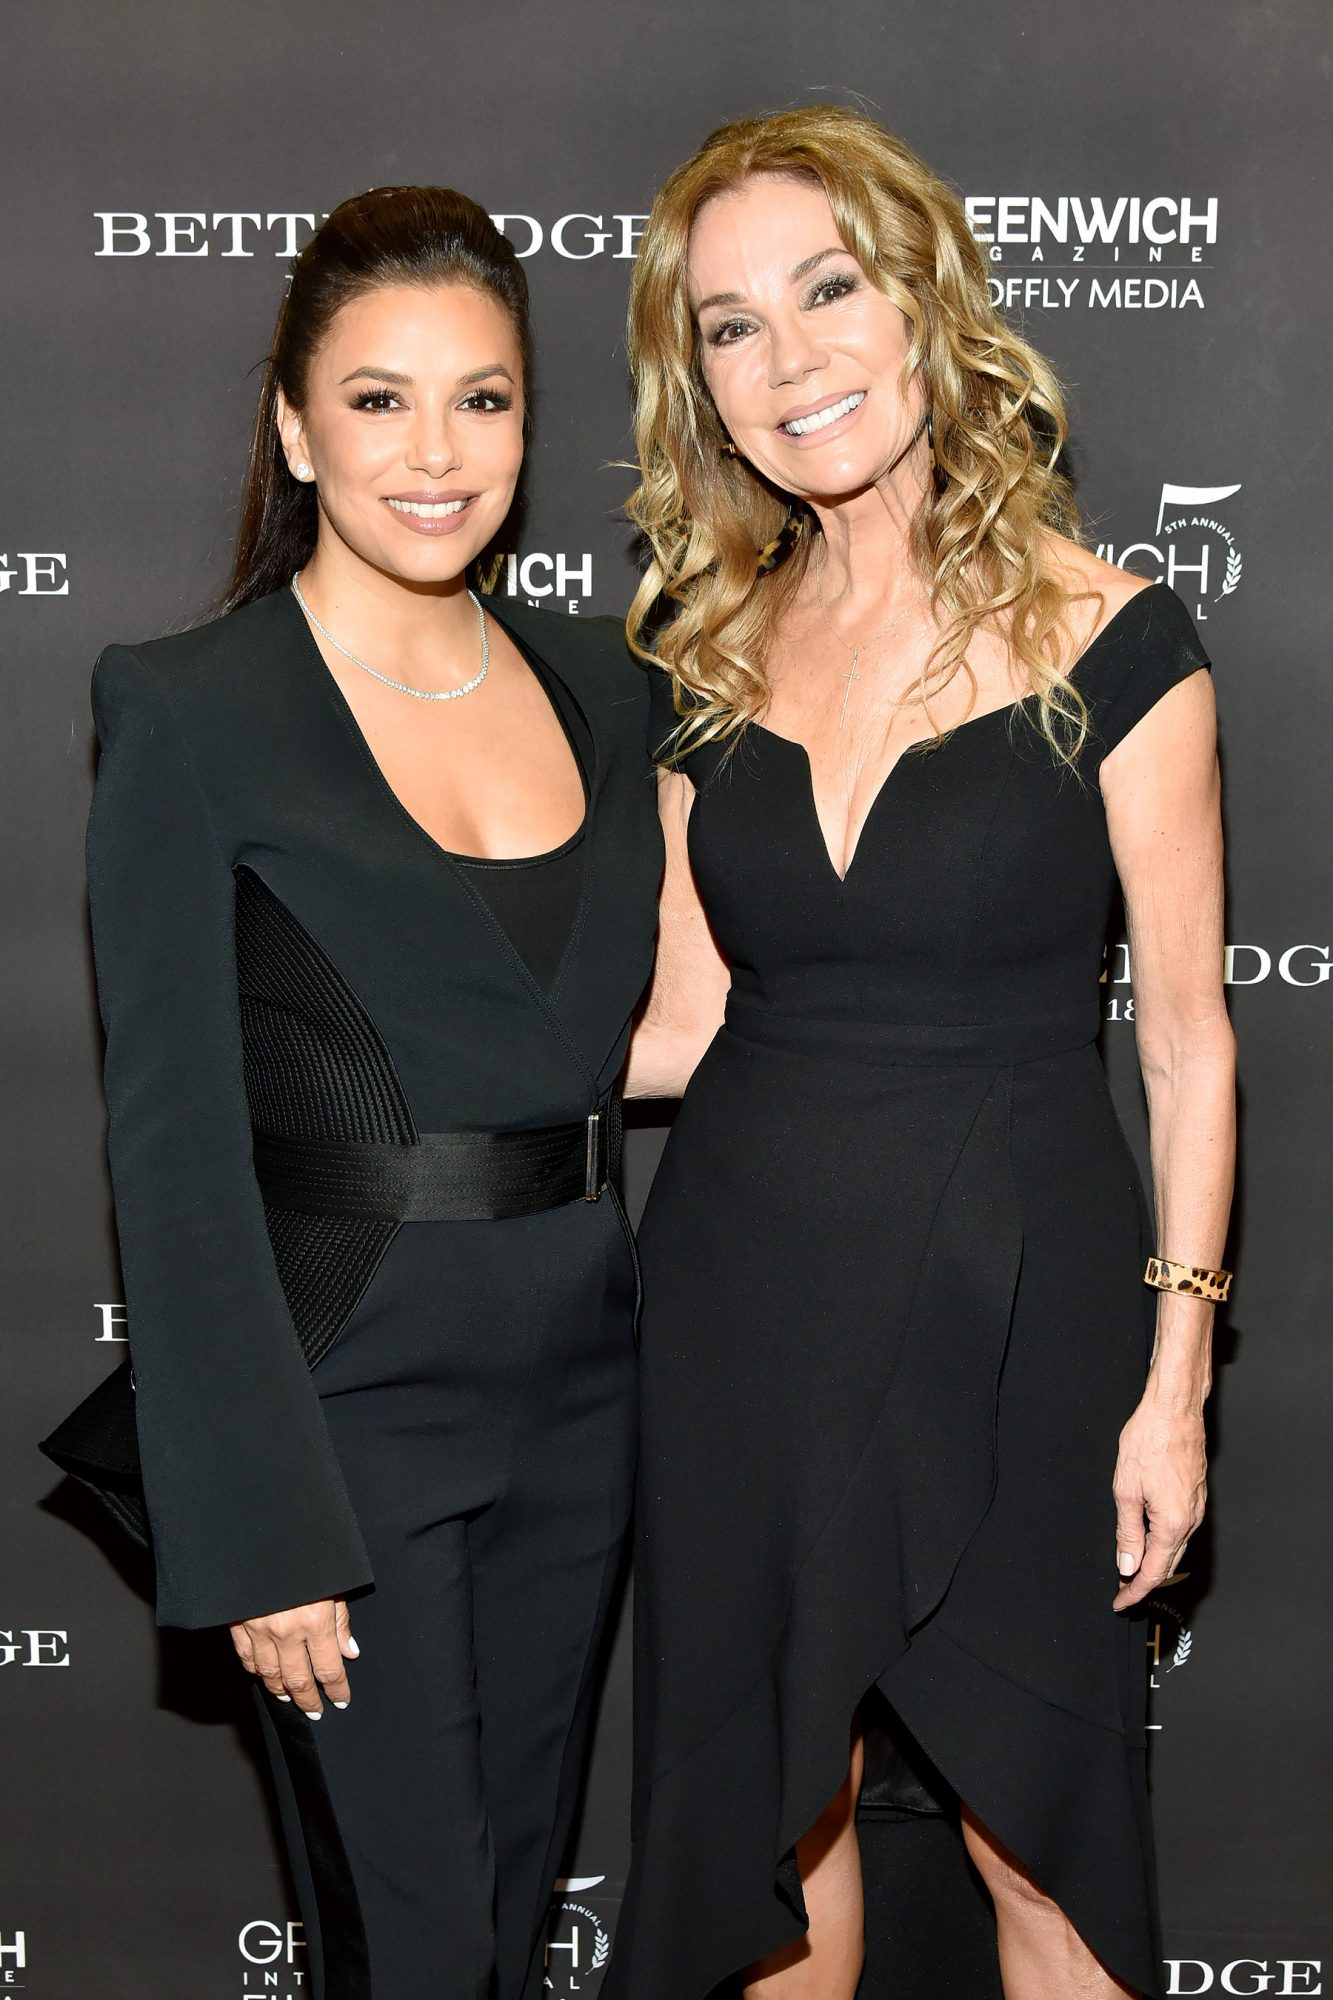 Eva Longoria Baston and Kathie Lee Gifford